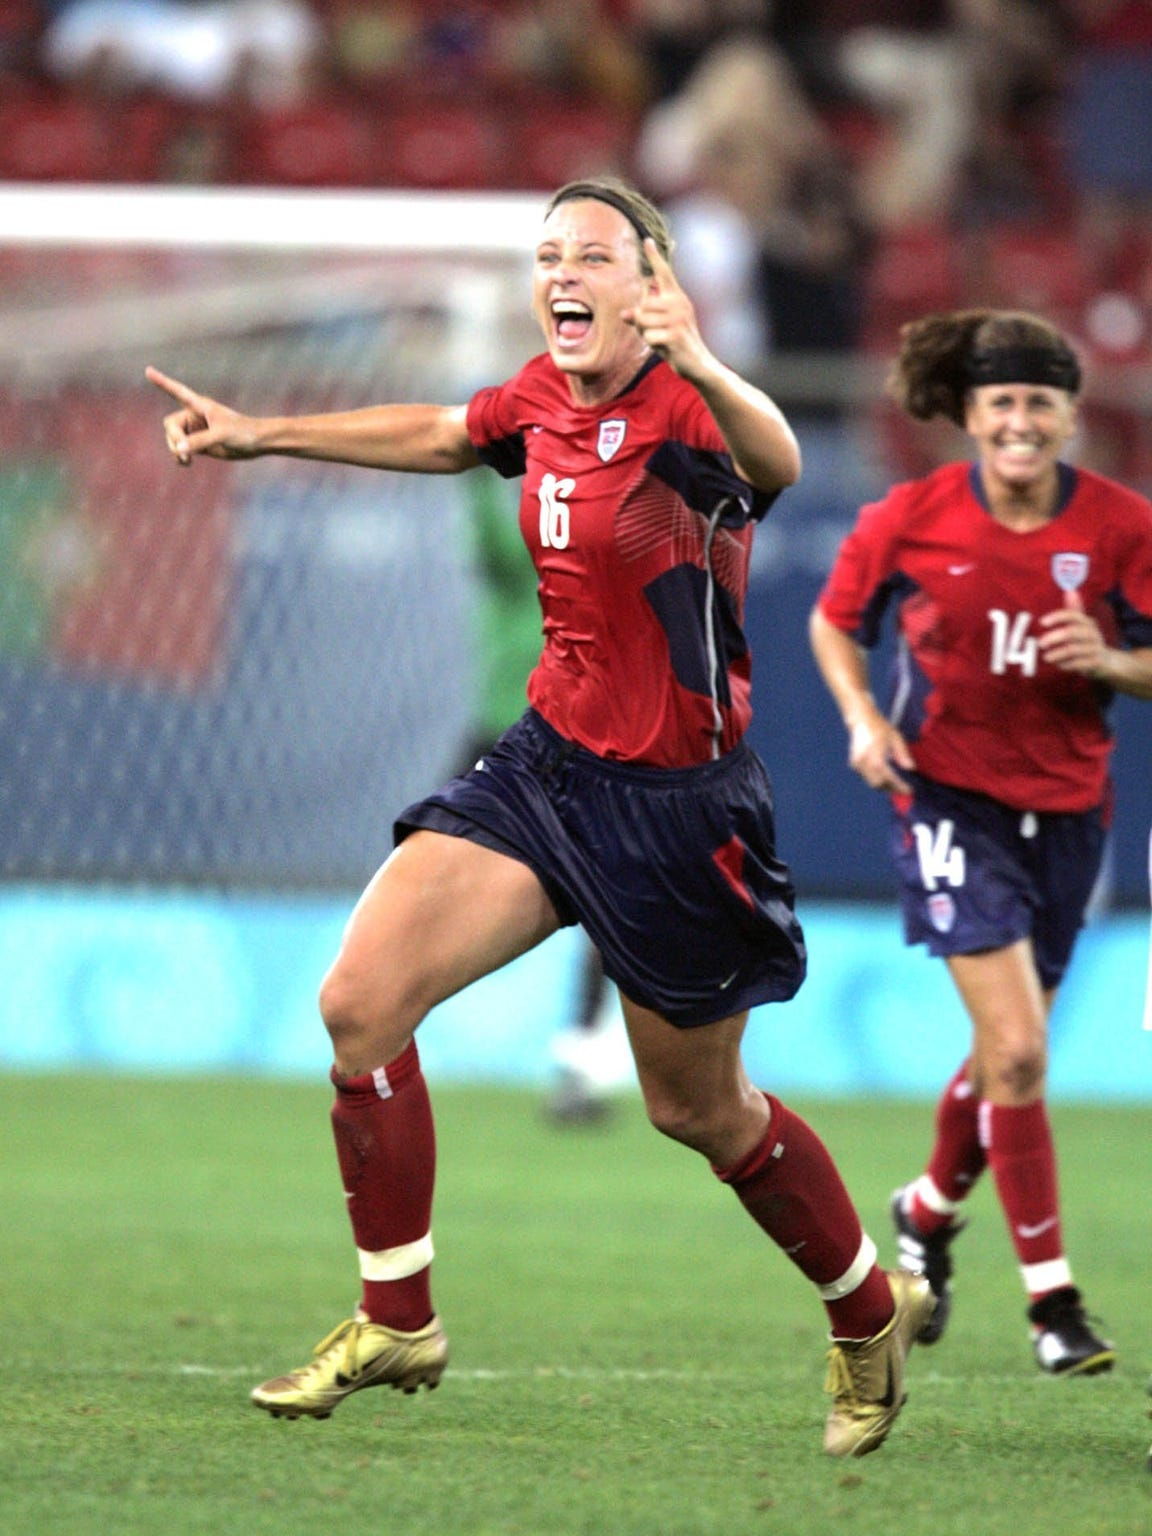 Abby Wambach runs across the field after scoring in